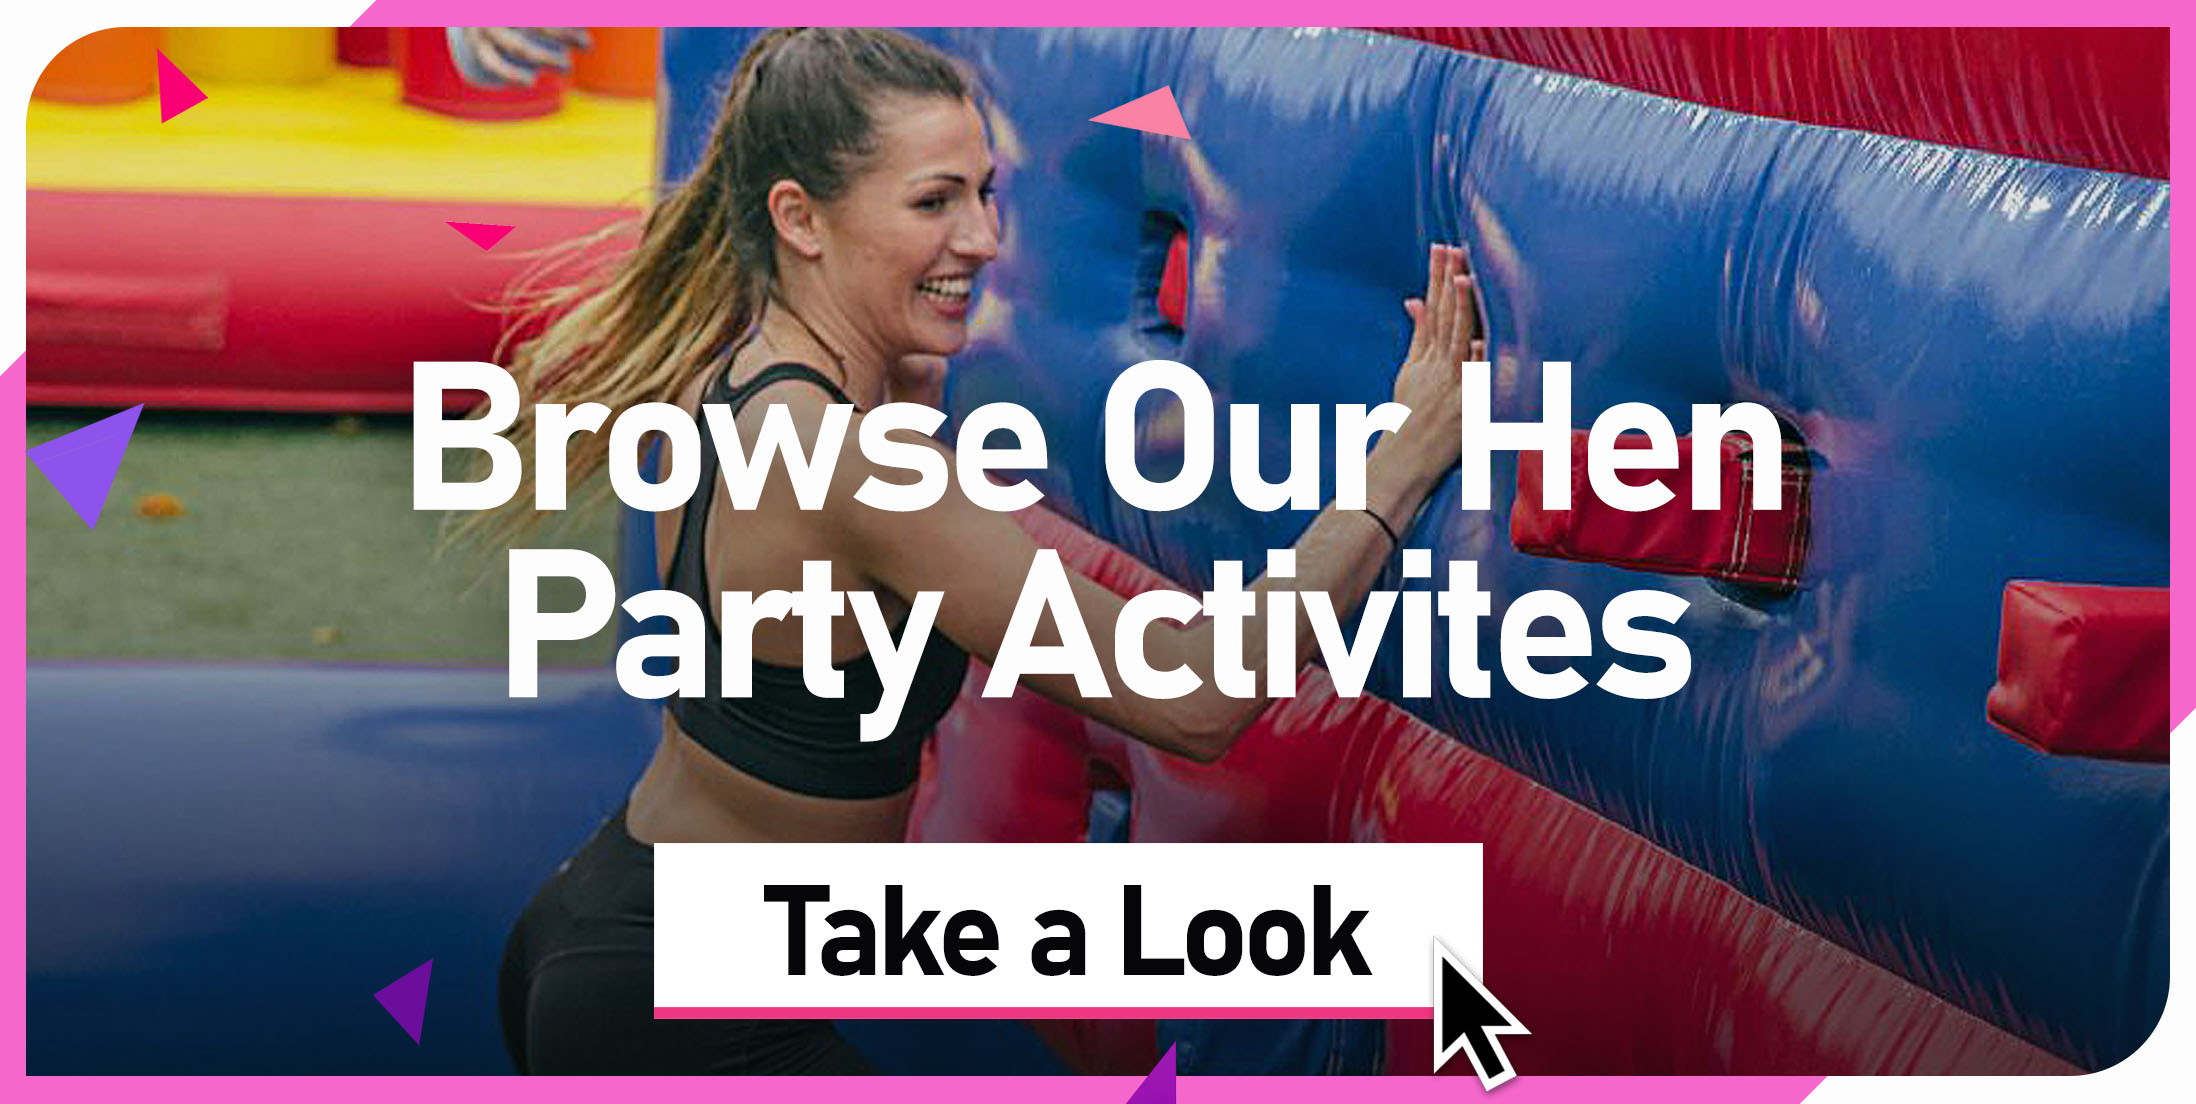 Browse Our Hen Party Activities